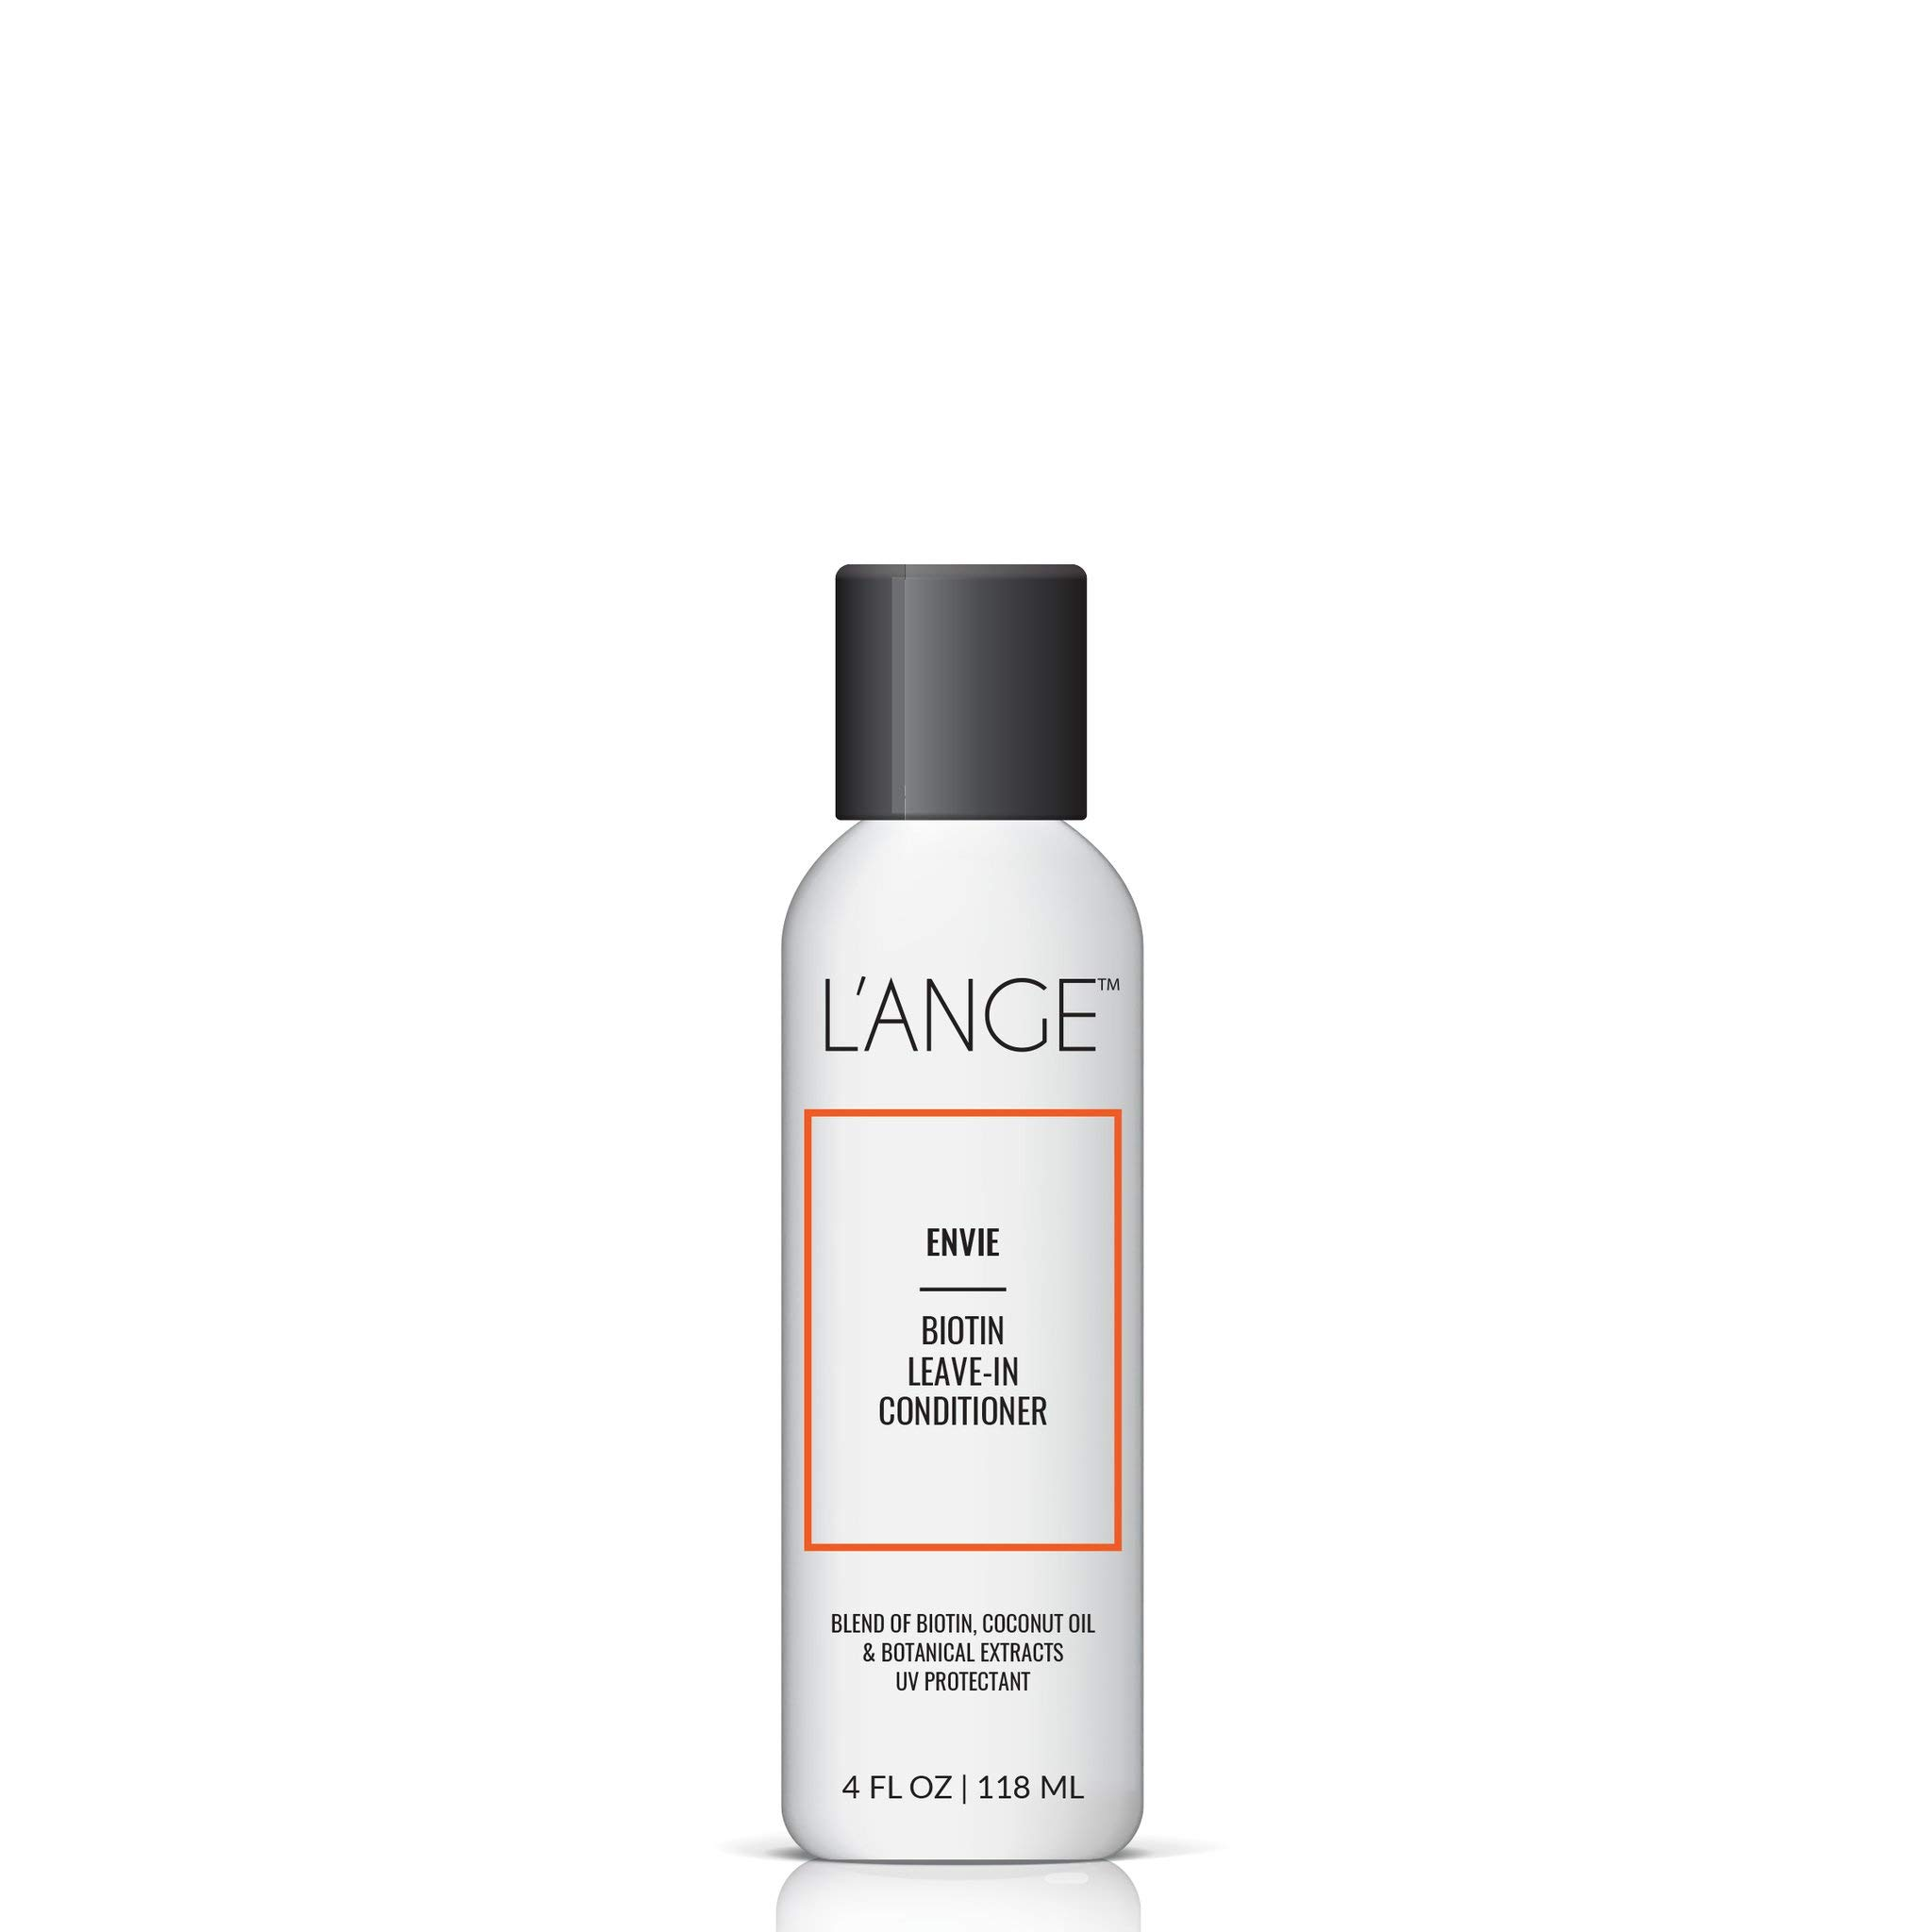 L'ange Hair ENVIE Leave-In Conditioner - Biotin, Coconut Oil & Botanical Extracts - Professional Salon Grade Natural Treatment for Hair - Anti-Frizz Blowout Care - UV Protectant, 4 Fl Oz, MSRP $30.00